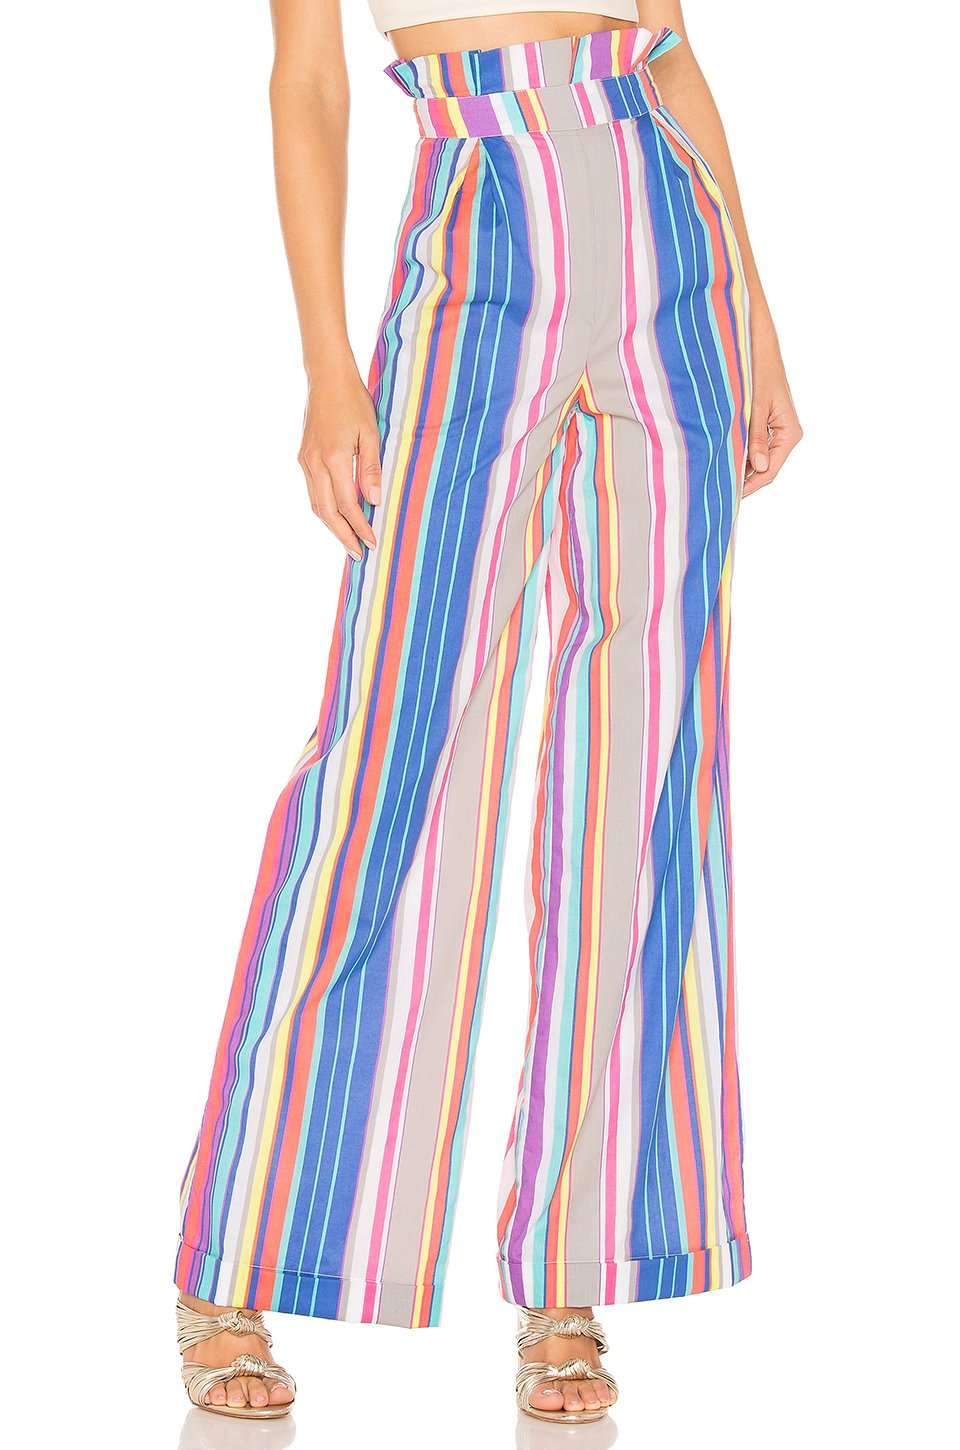 Yvonne Rainbow Pant in Multi Stripe